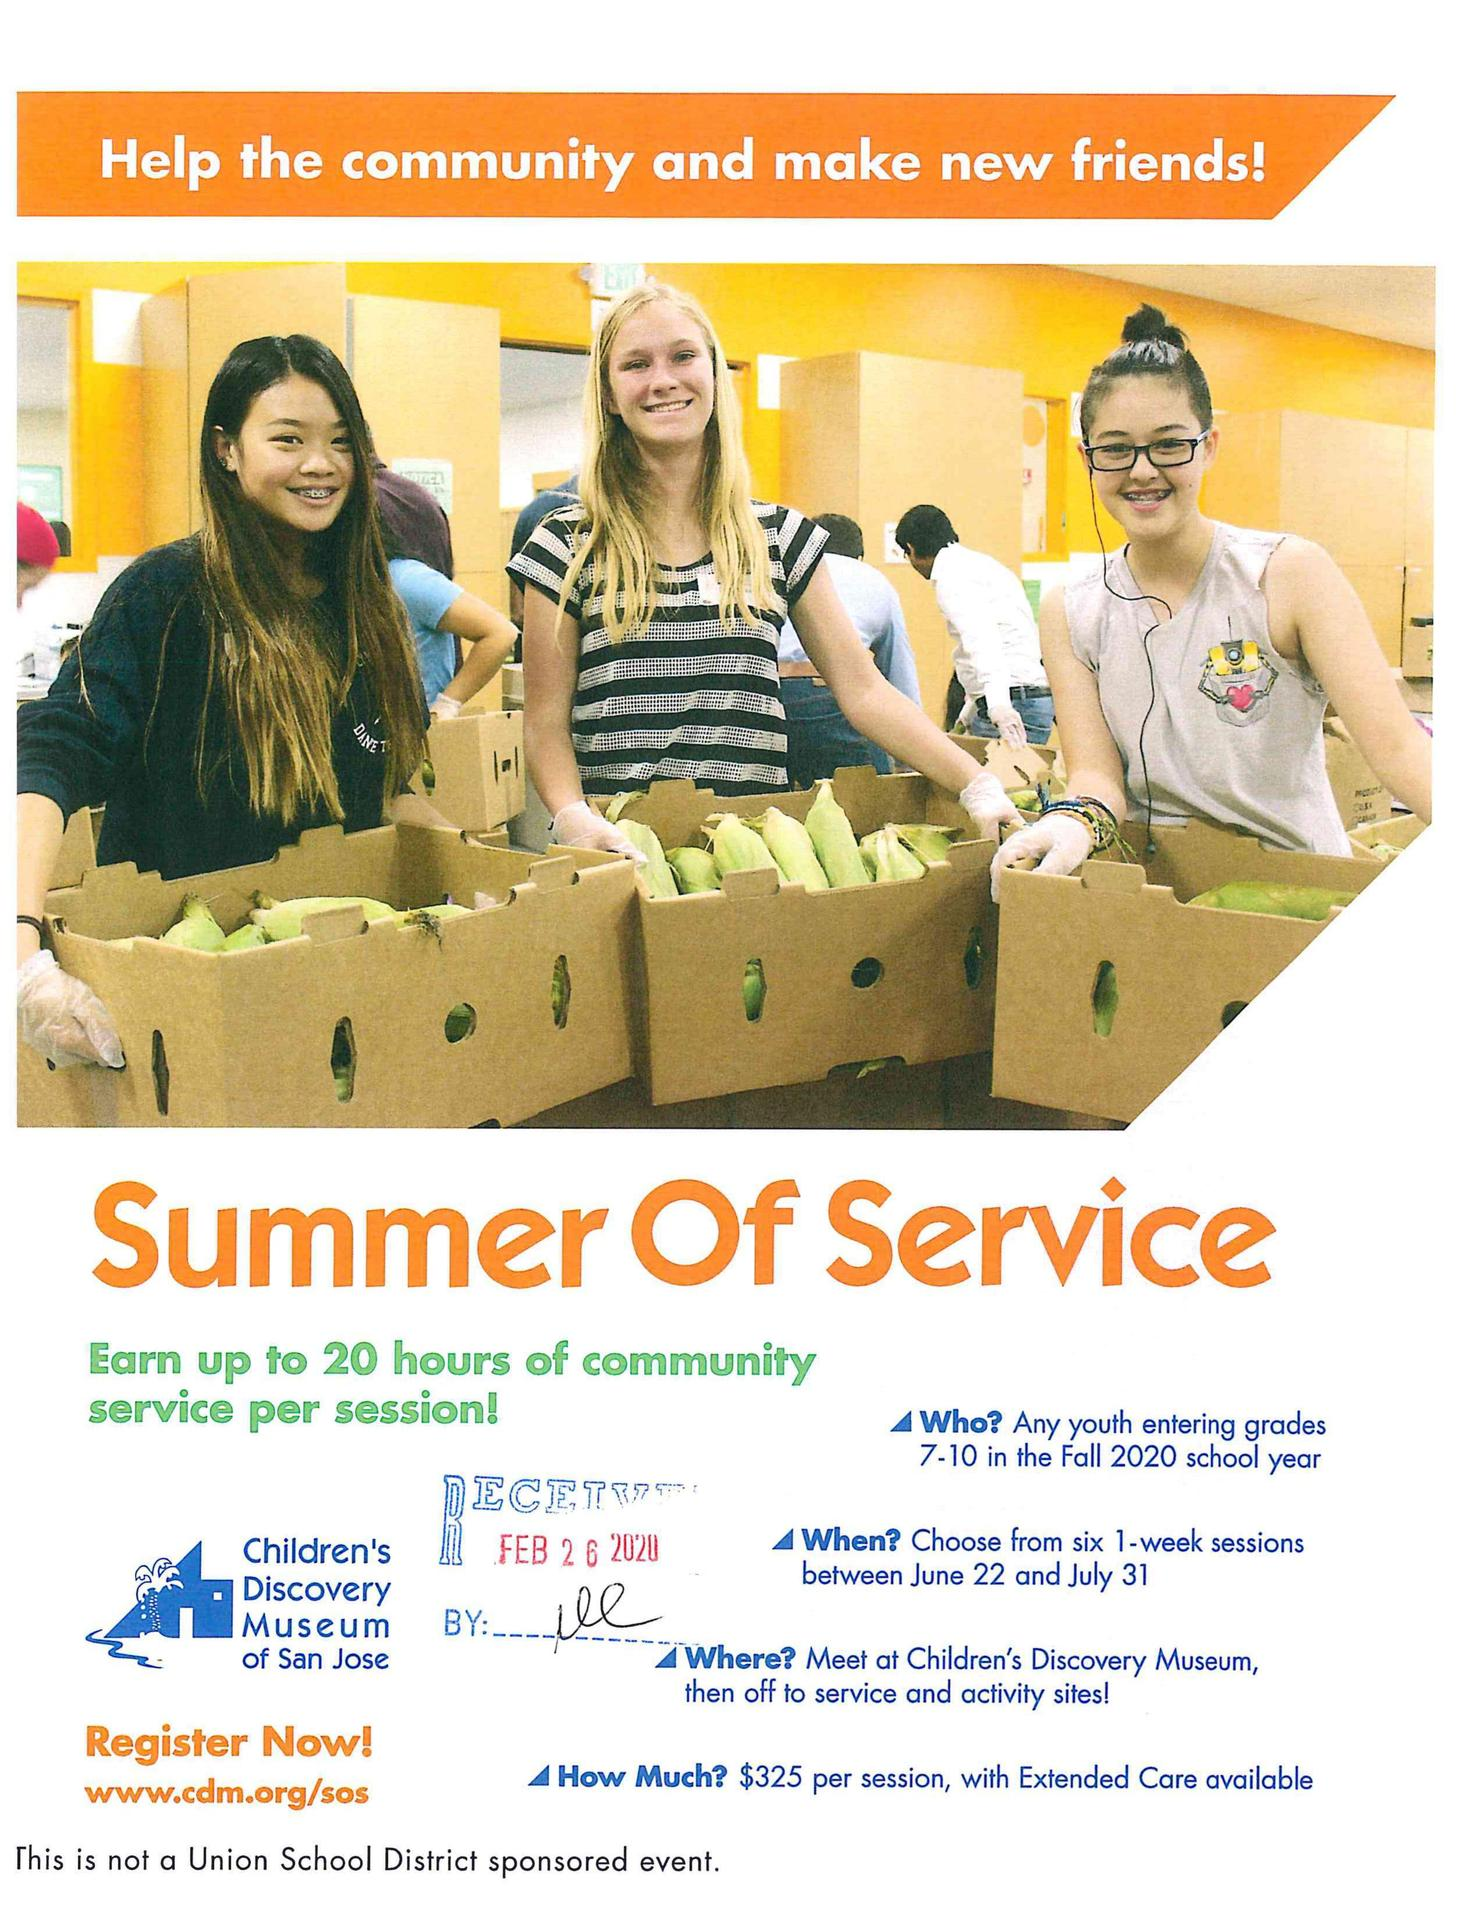 Children's Discovery Museum Summer Service